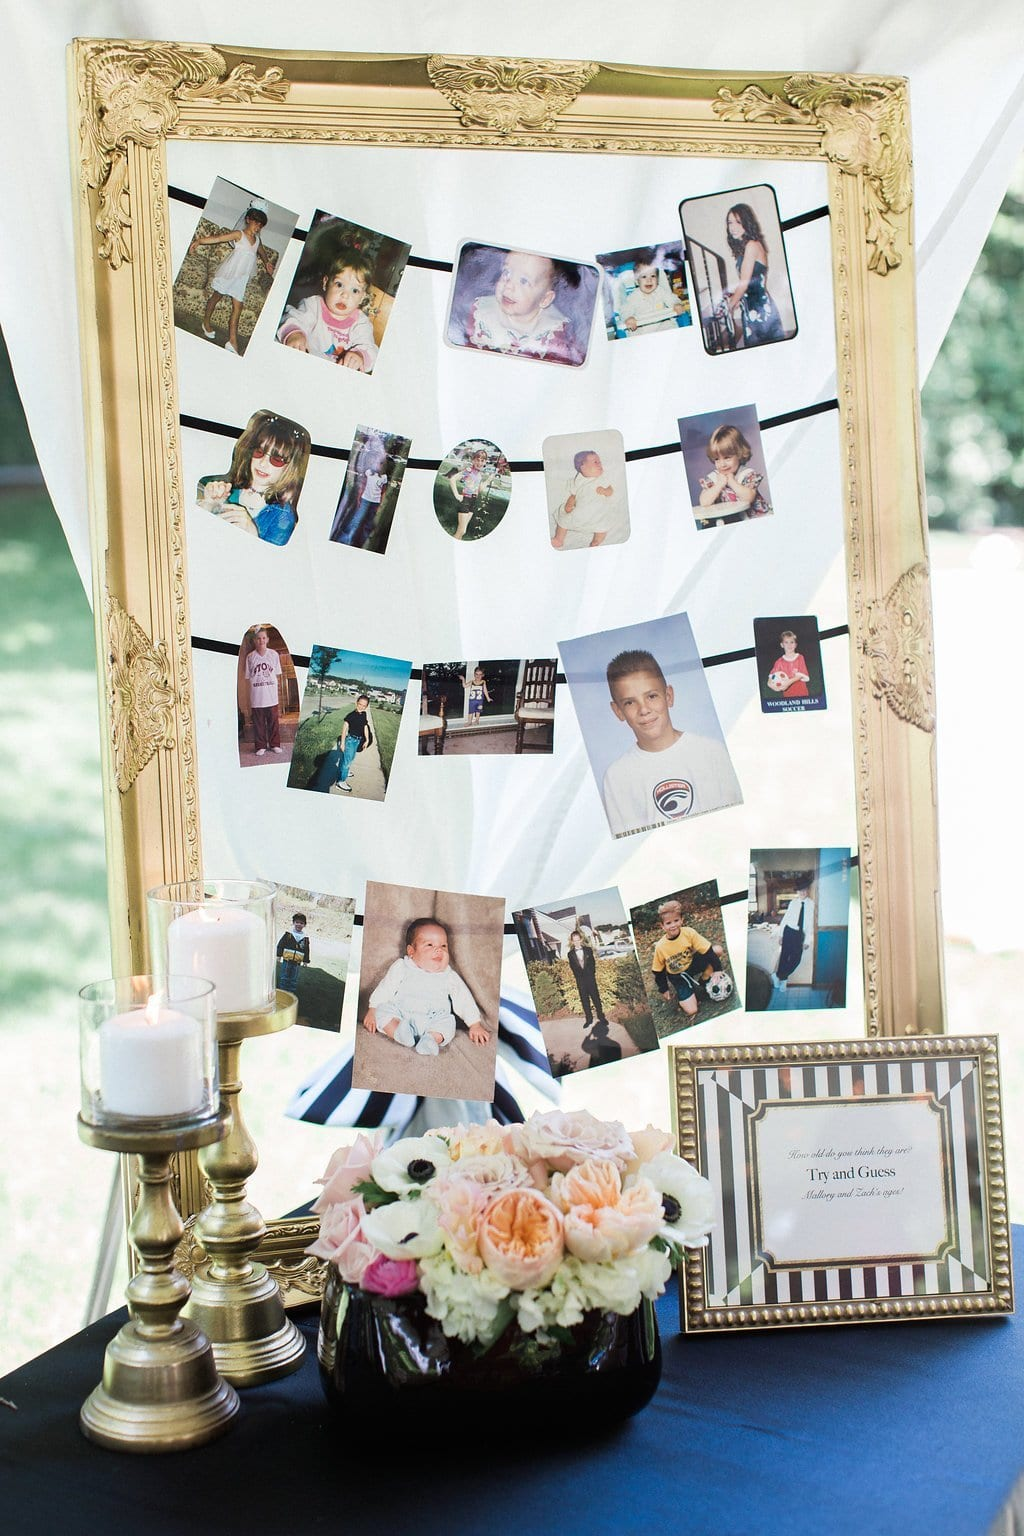 baby photographs guessing game of bride and groom in gold frame at shower - Black & White Kate Spade Inspired Bridal Shower